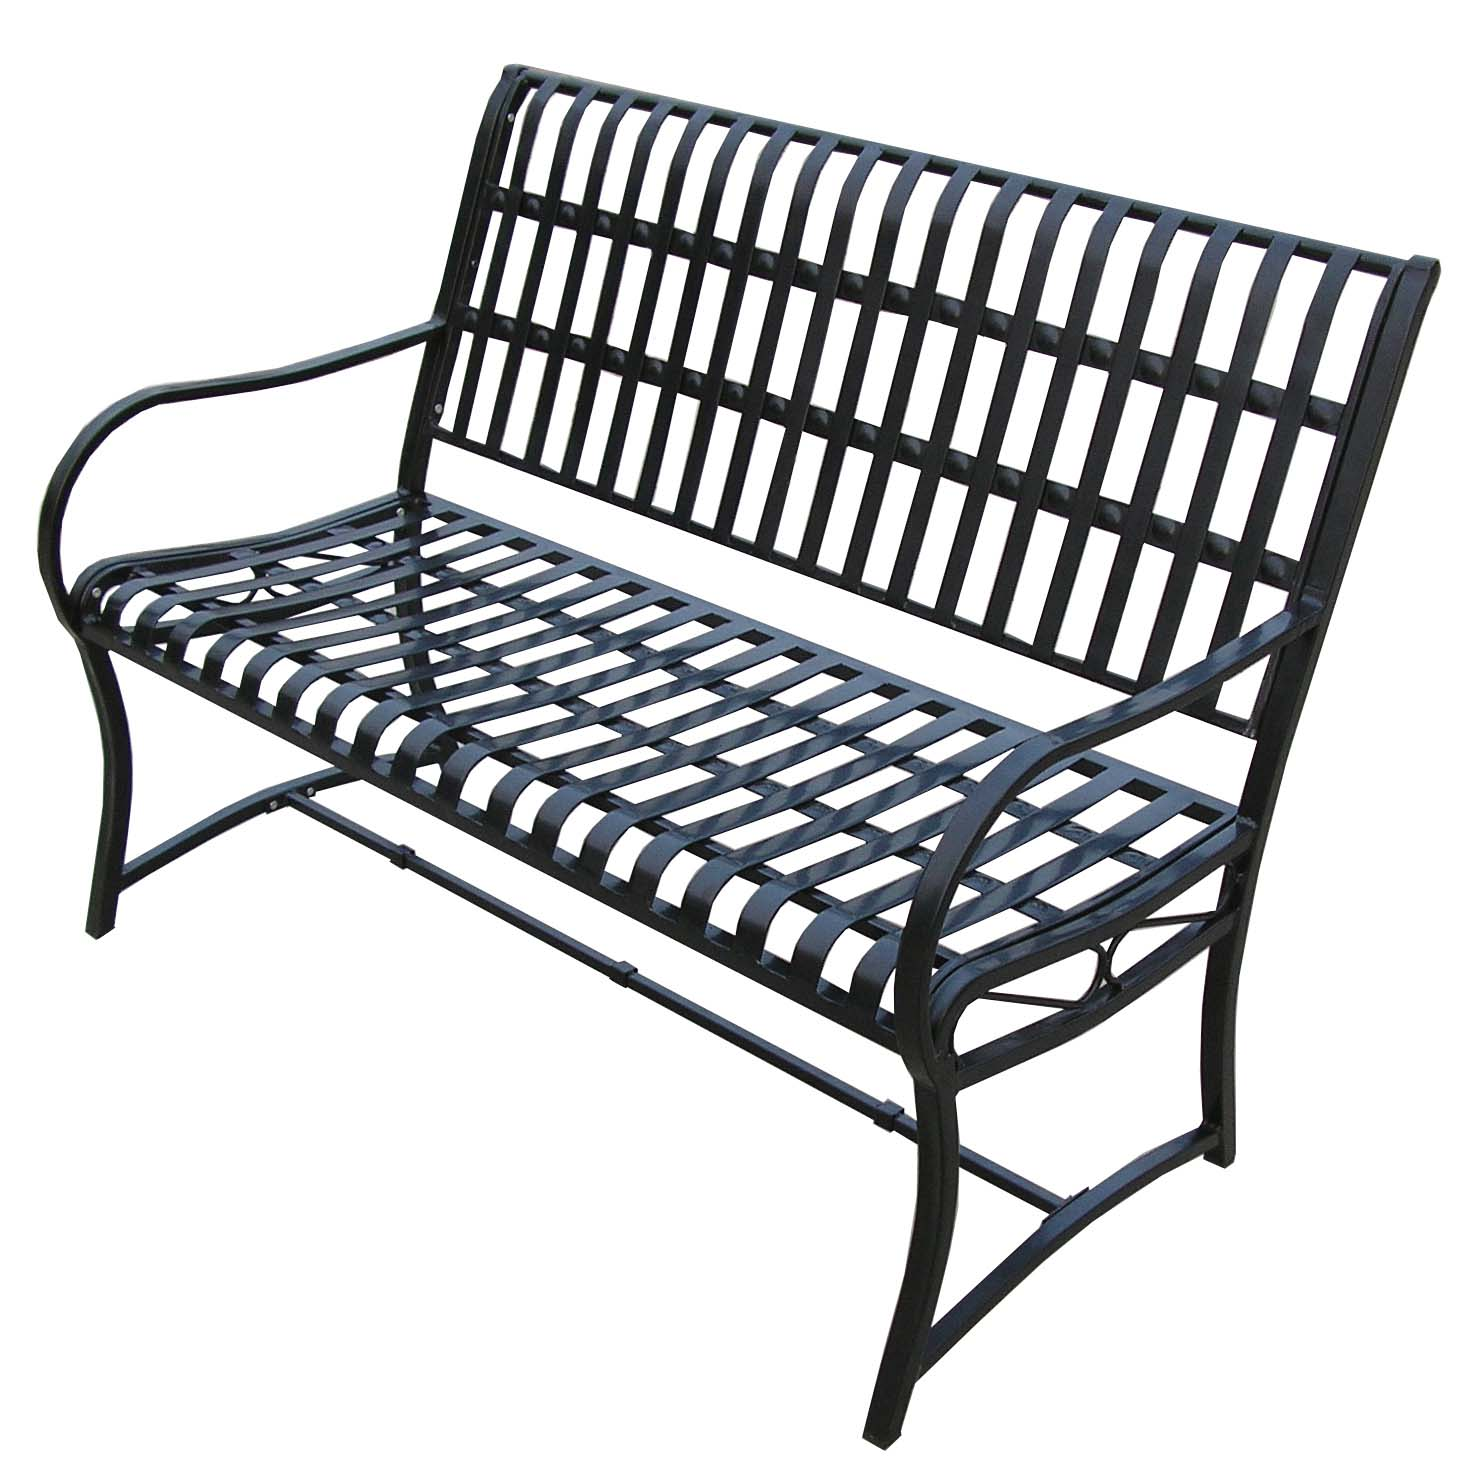 Cheap Noble Hammer Tone Bench Product Photo